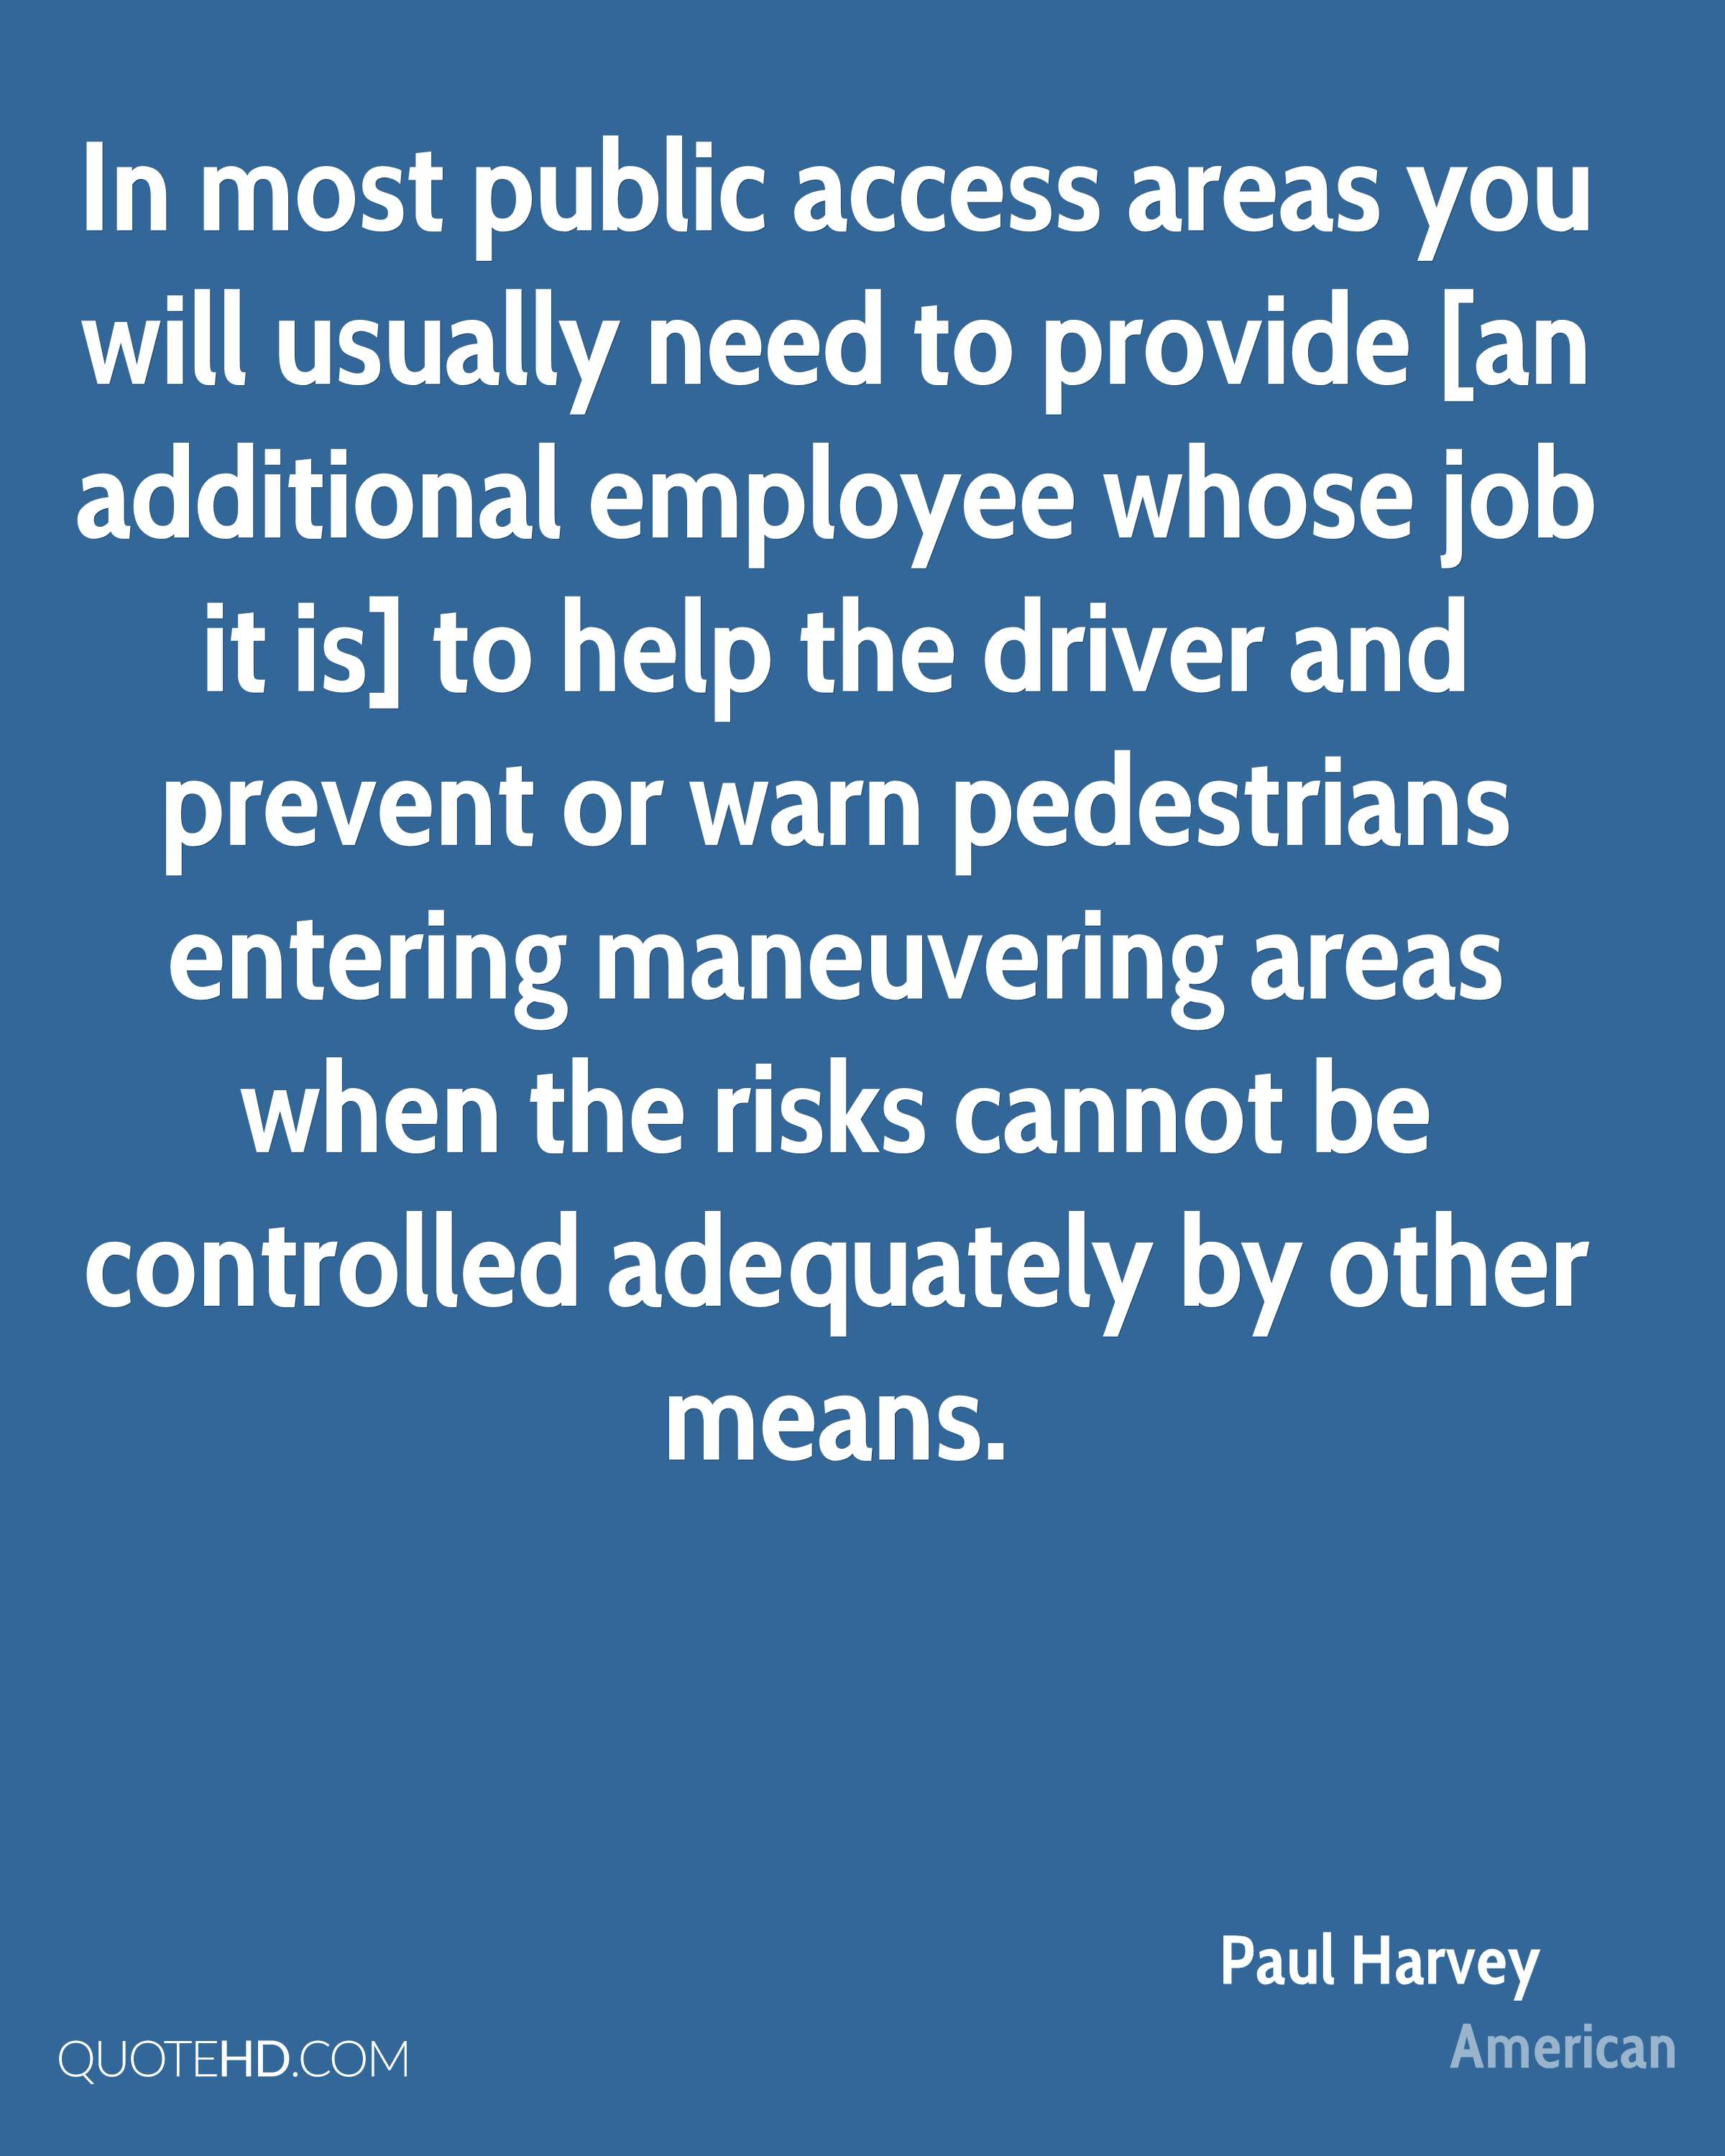 In most public access areas you will usually need to provide [an additional employee whose job it is] to help the driver and prevent or warn pedestrians entering maneuvering areas when the risks cannot be controlled adequately by other means.